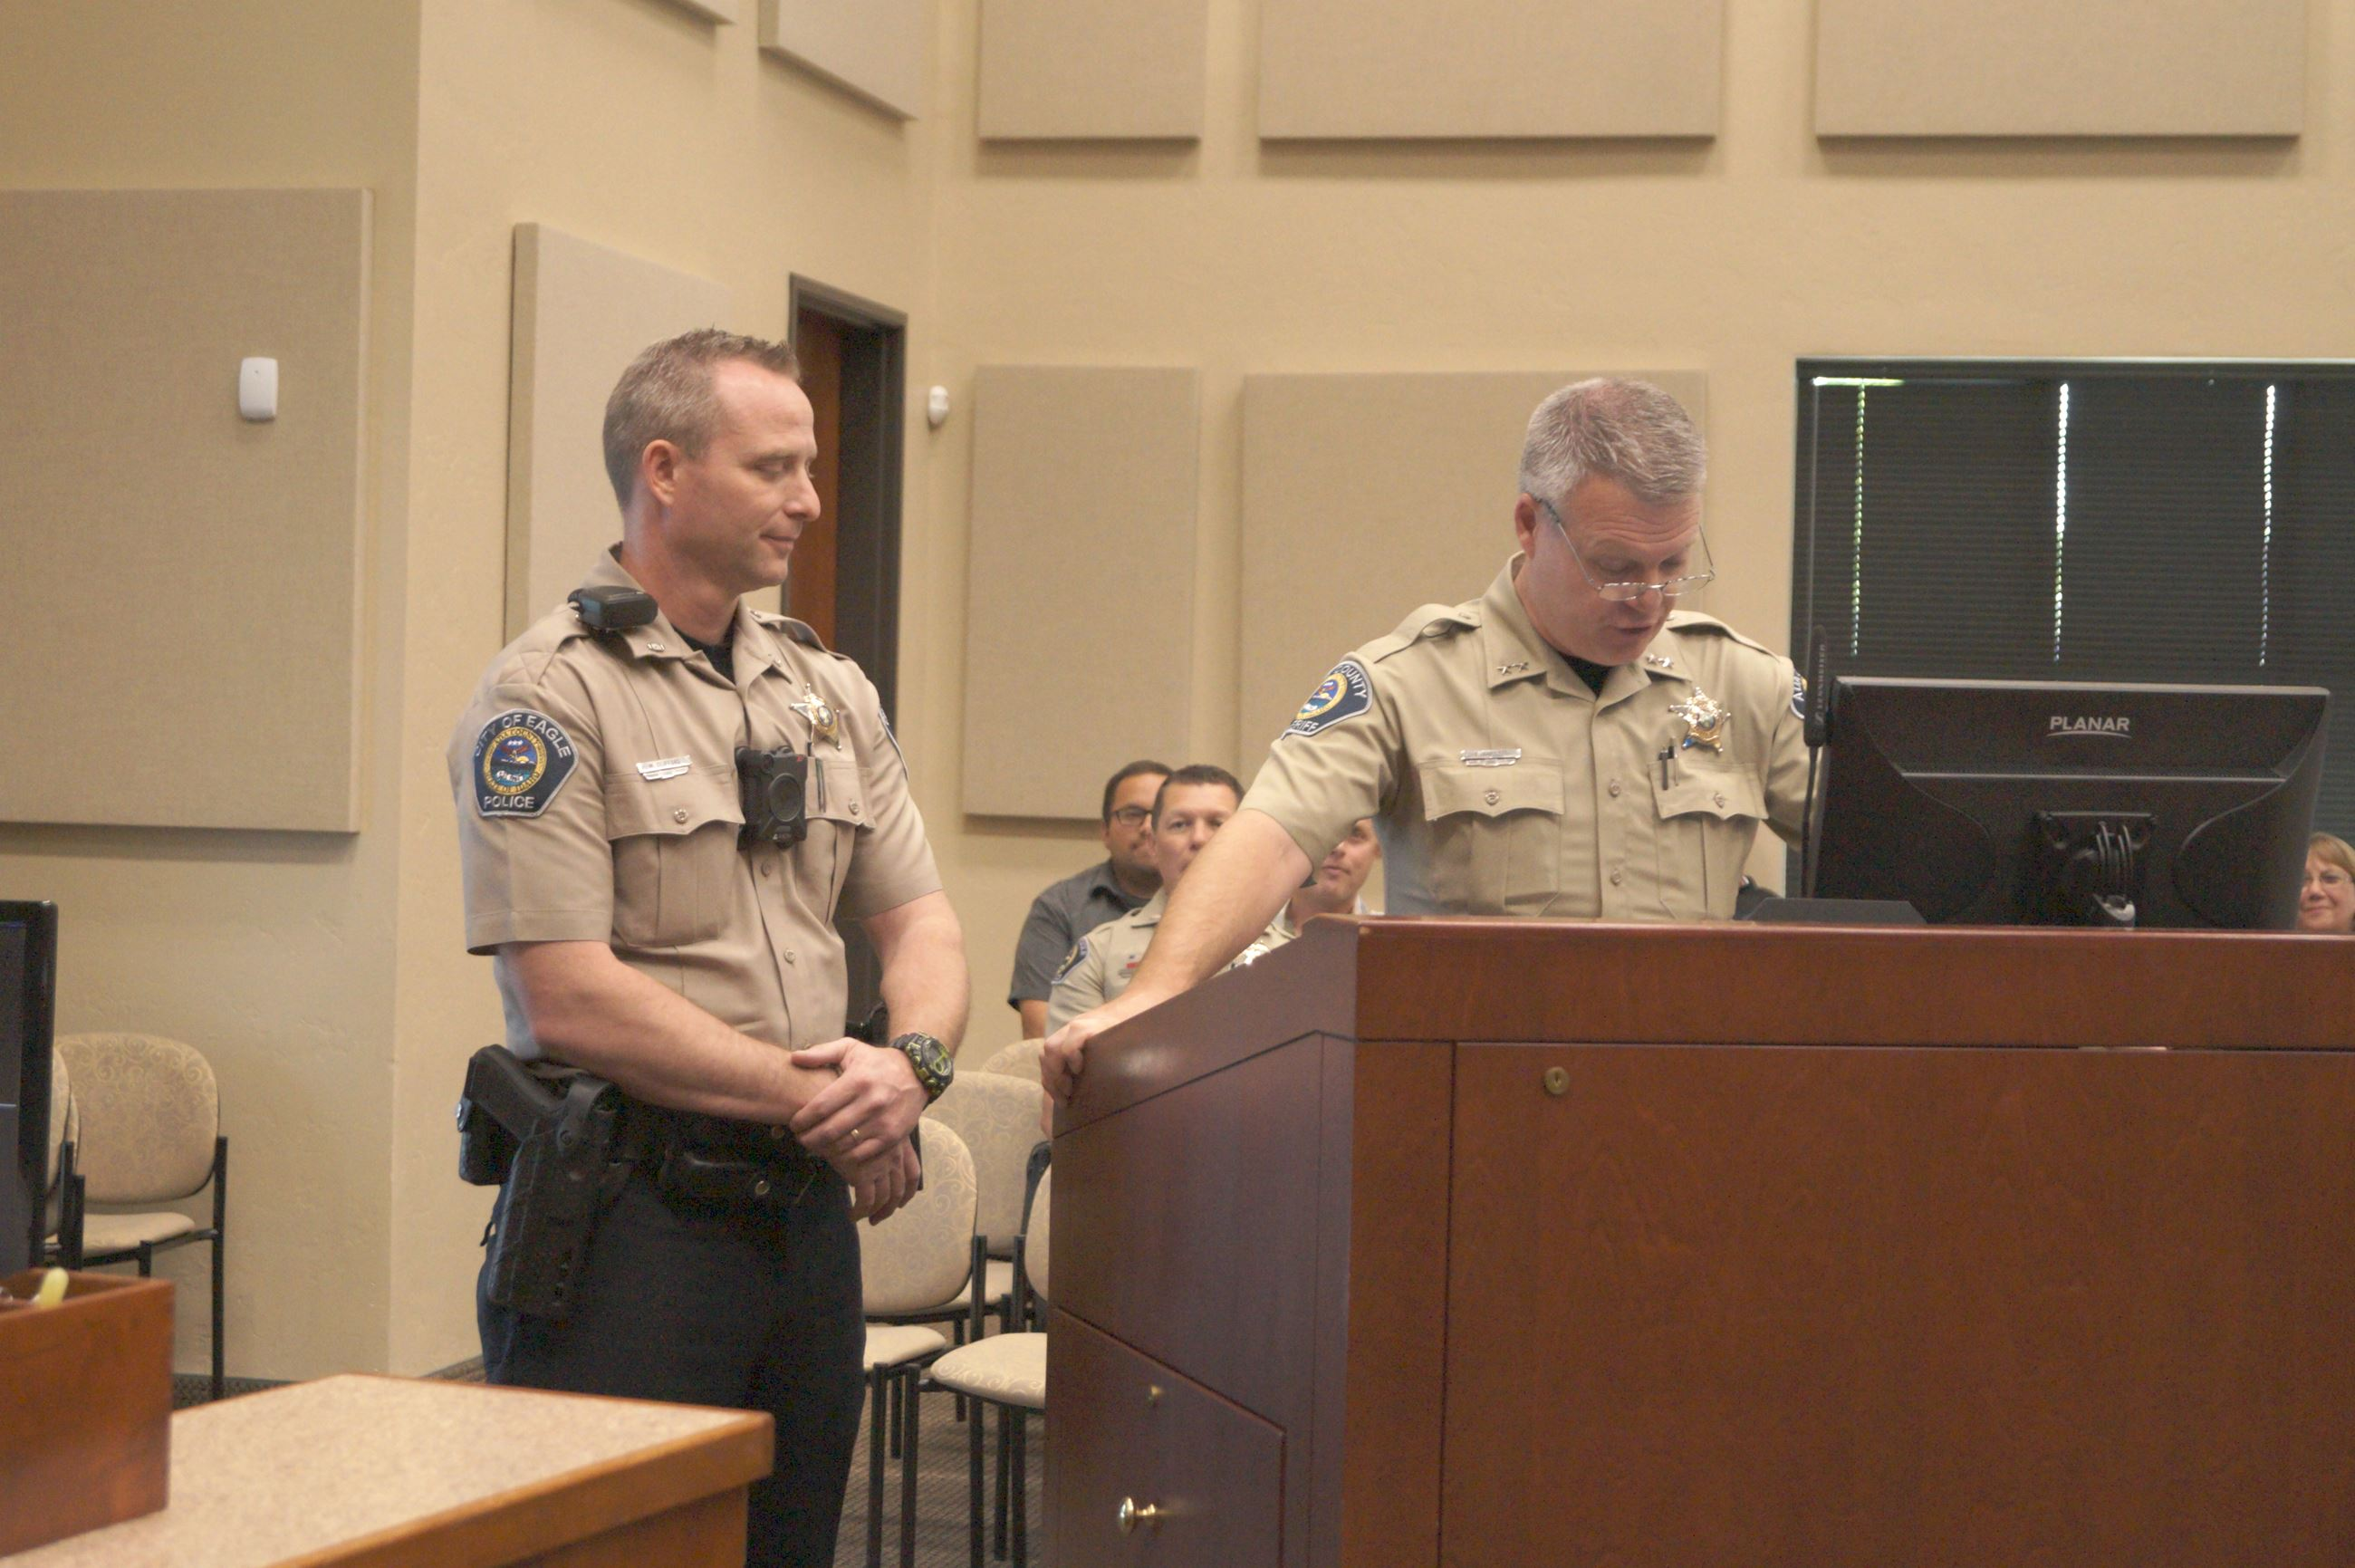 Ada County Sheriff Stephen Bartlett introduced Chief Matt Clifford to the city council